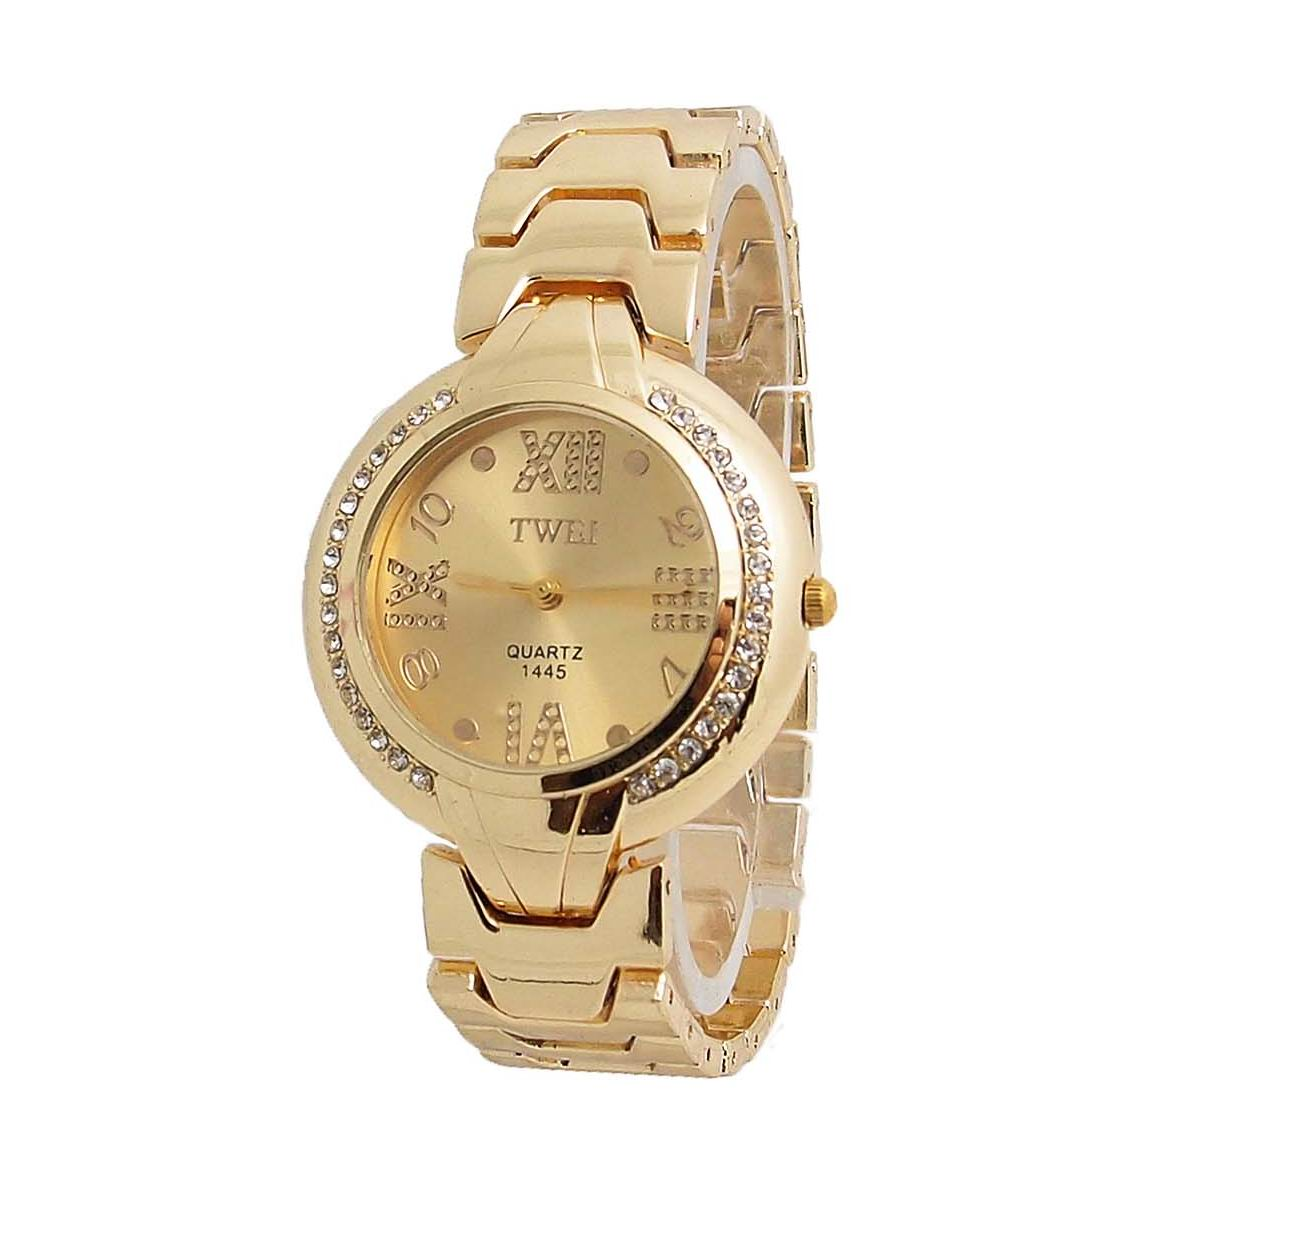 High Quality Gold Plated Watch Women Ladies Crystal Dress Quartz Wristwatches Relogio Feminino TW047 high quality hot sales geneva brand silicone watch women ladies crystal dress quartz wristwatches relogio feminino gv001